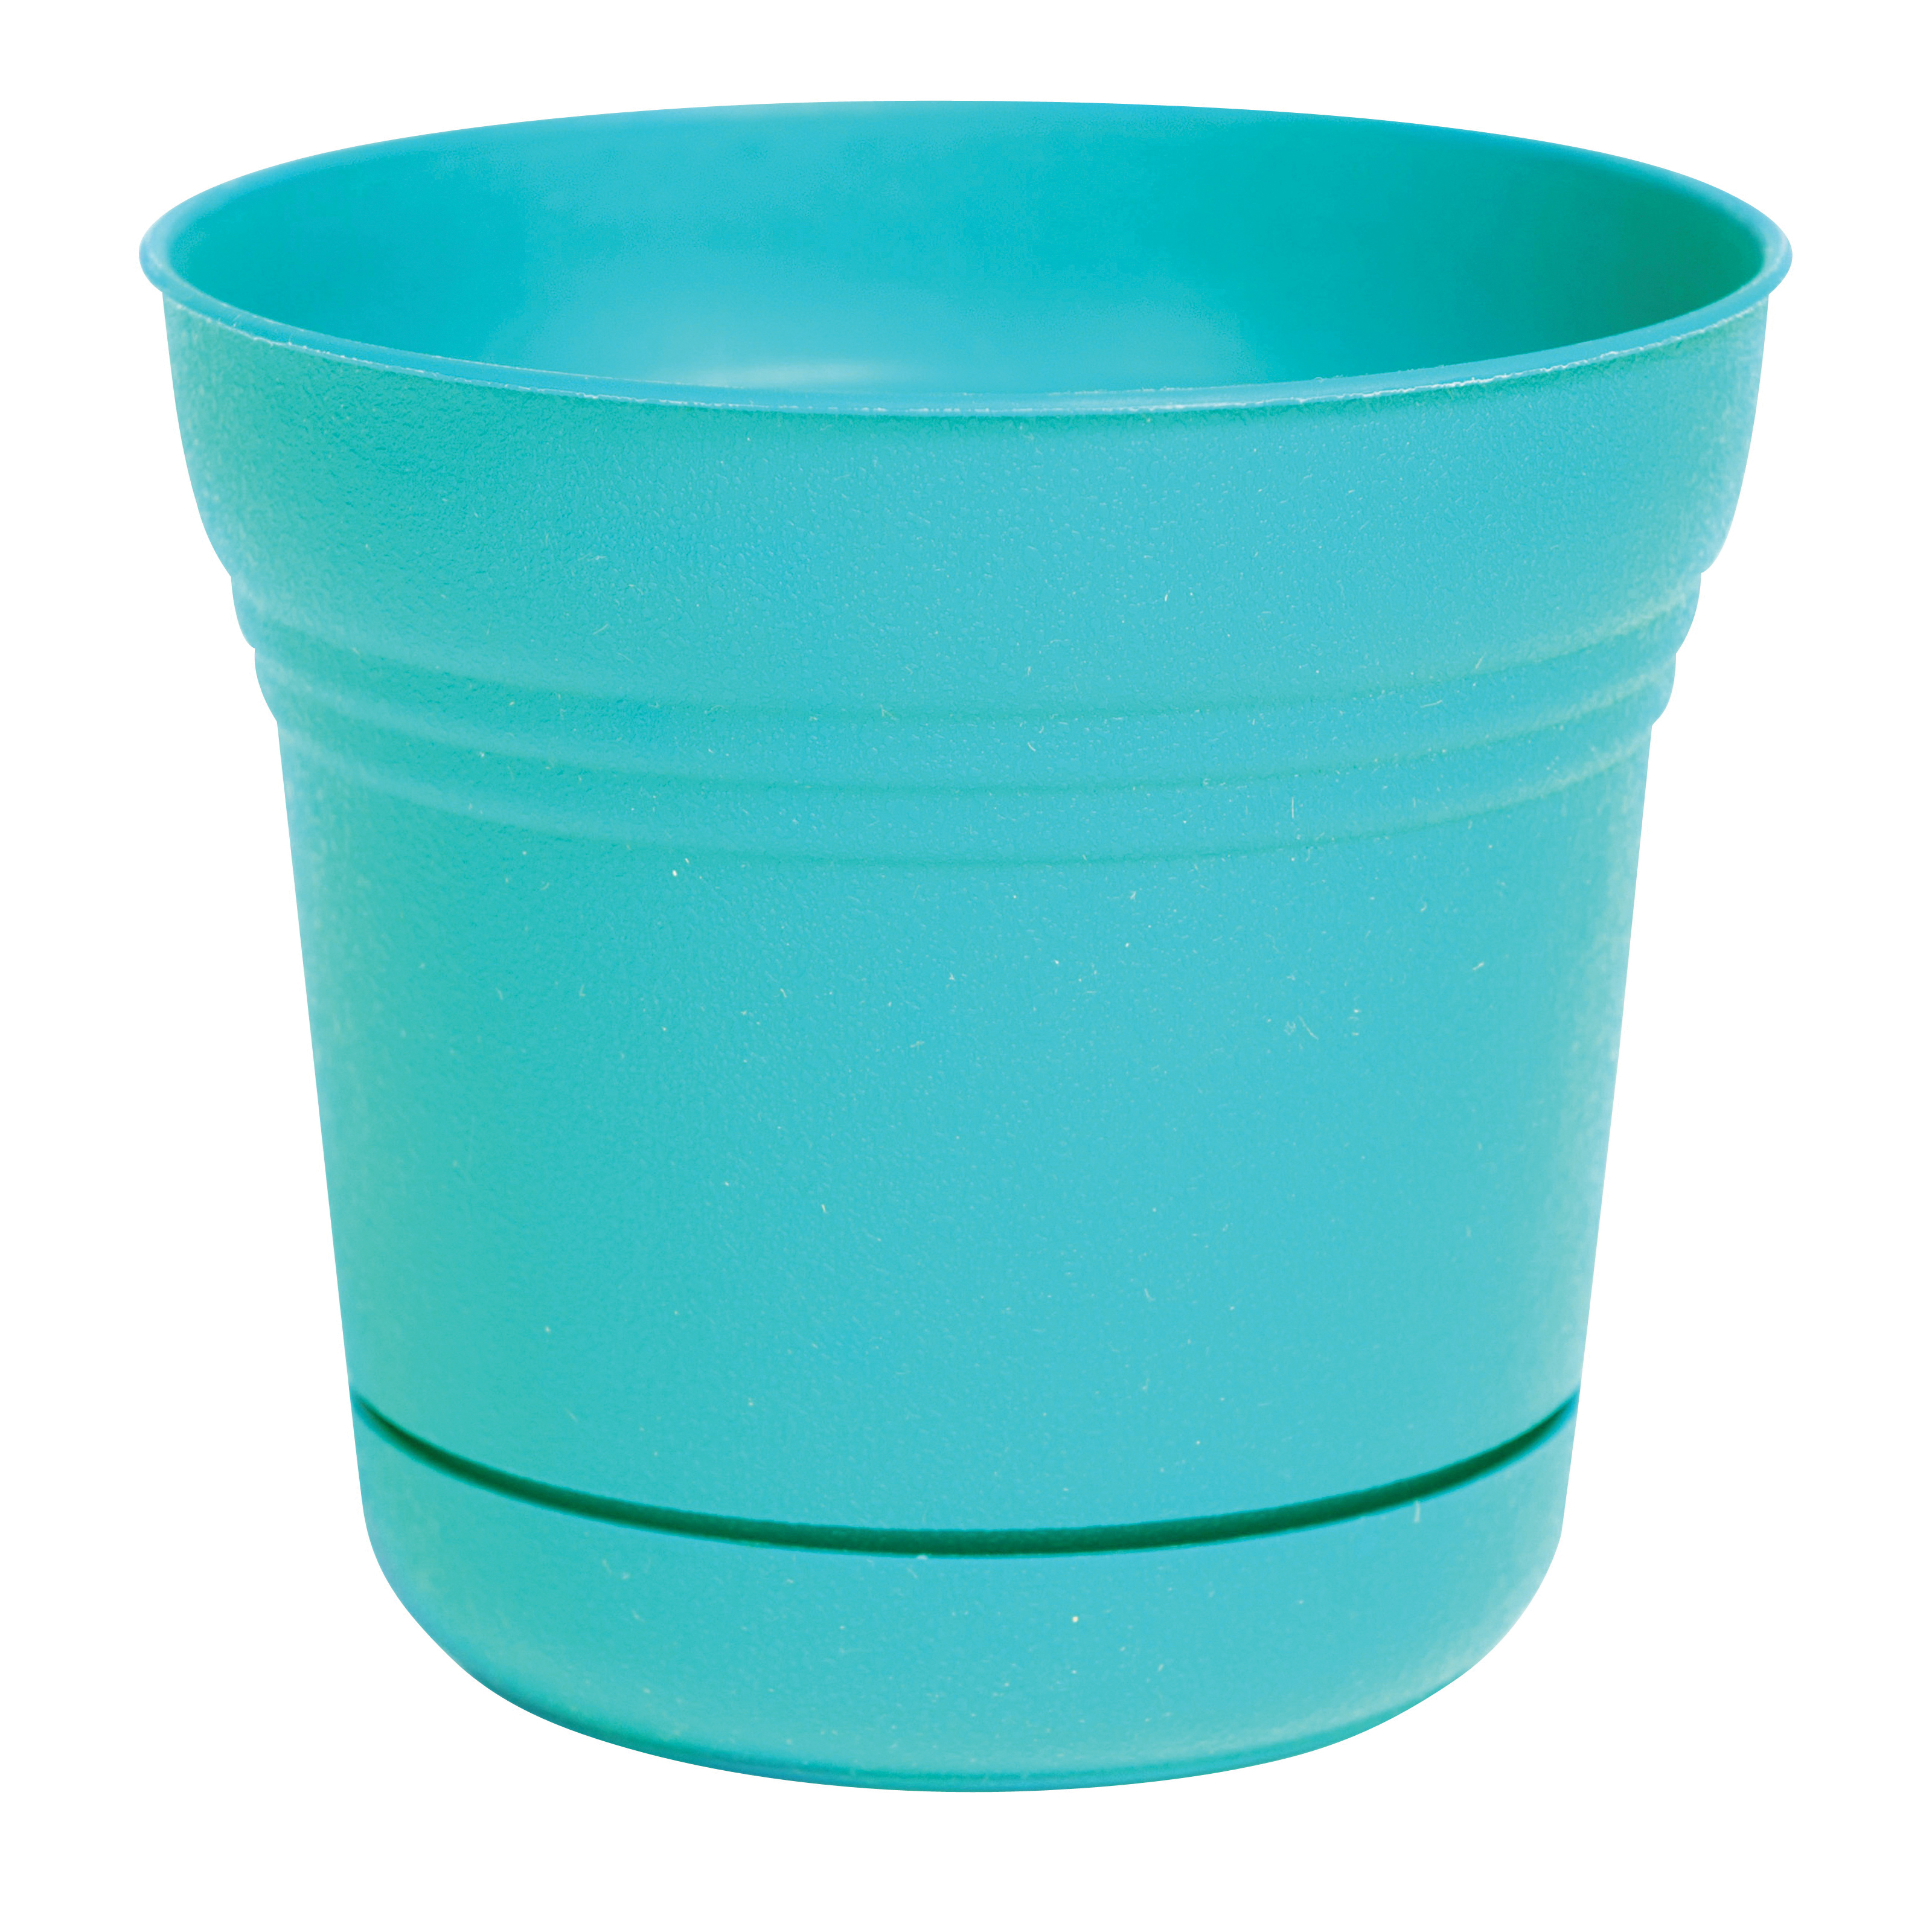 Picture of Bloem SP1027 Saturn Planter, 10 in W, Bell, Plastic, Teal, Matte